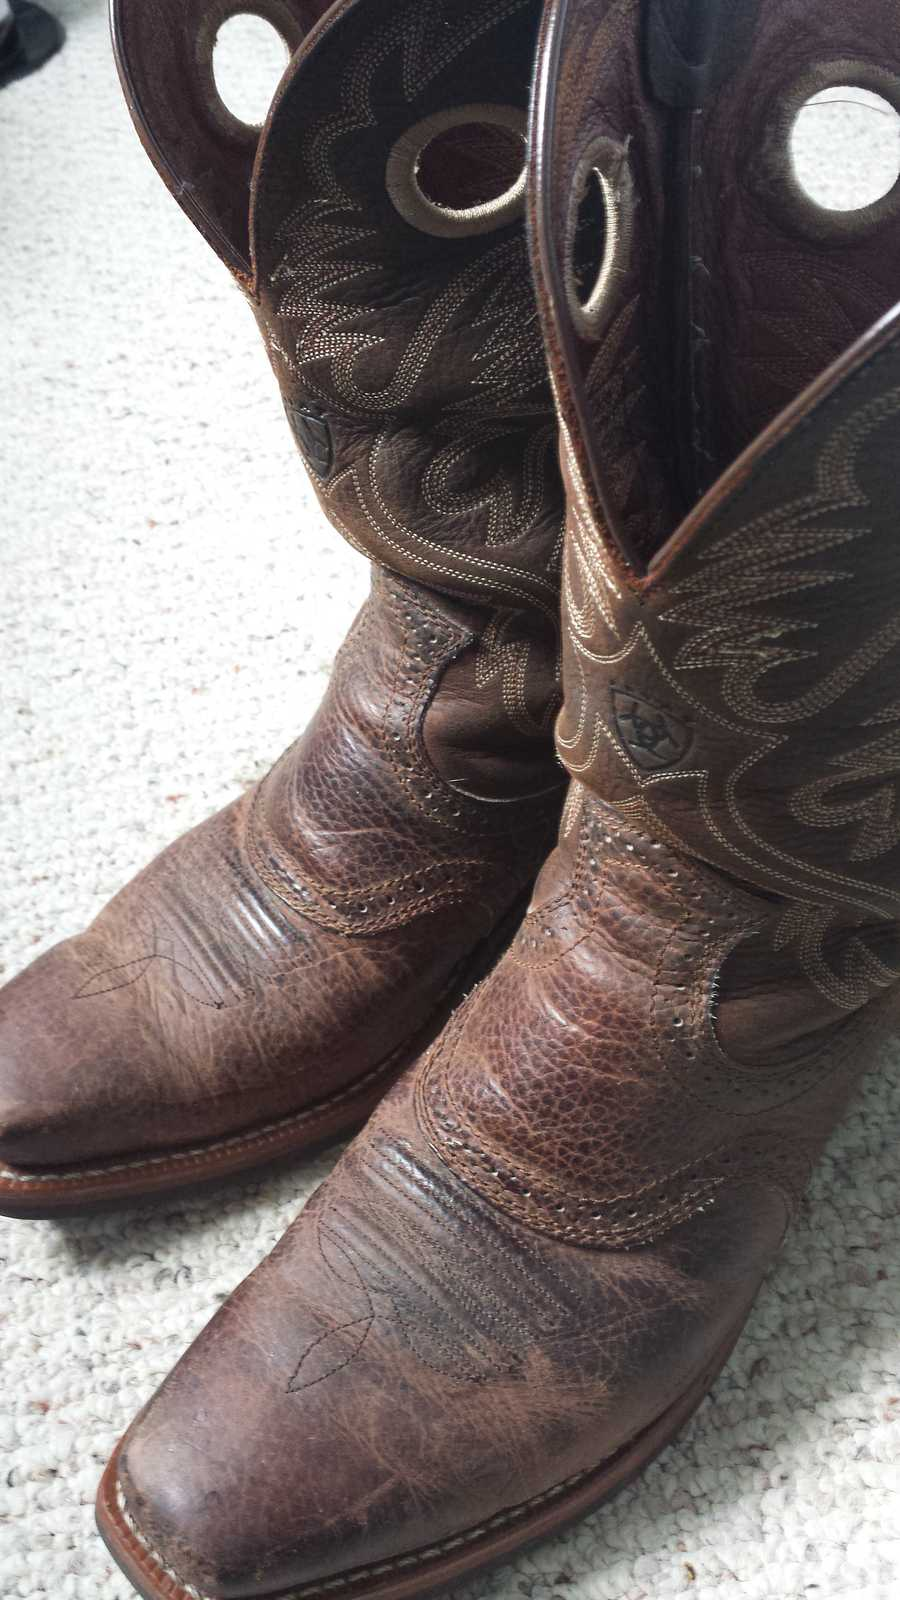 3. I own cowboy boots. Darn proud of 'em.. Away from work, my sense of style is a little lacking. When I realized I could just throw on some jeans and boots and a decent shirt I realized I finally figured something out.